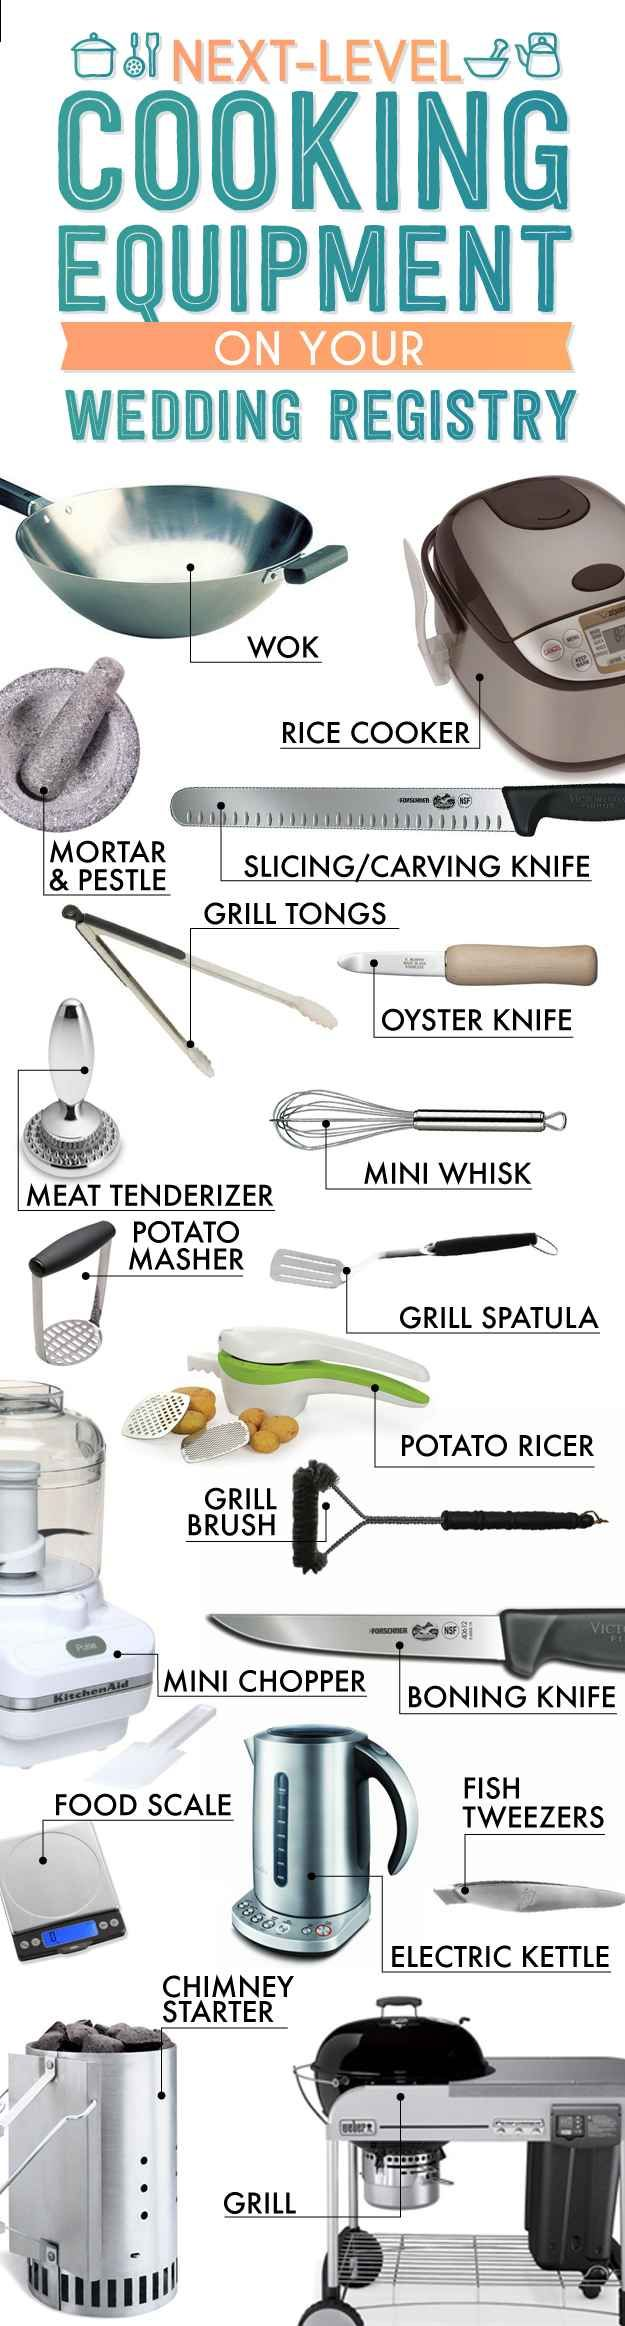 Kitchen equipment and their uses - The Essential Wedding Registry Checklist For Your Kitchen